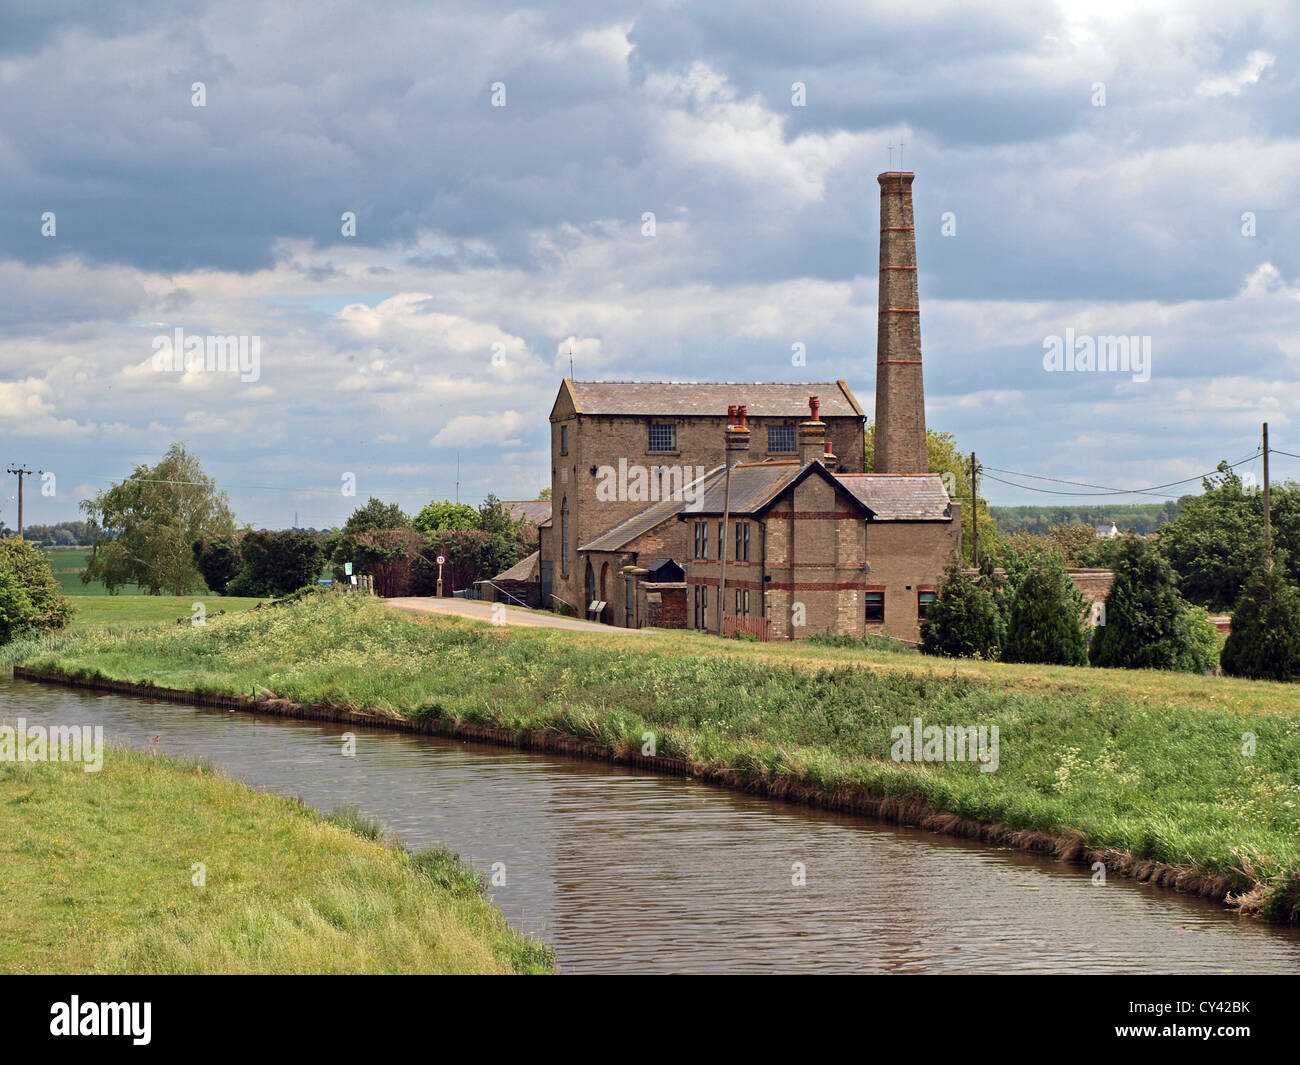 Building containing Stretham Old Engine the preserved coal powered steam fen drainage pump in Stretham Ely Cambridge Stock Photo